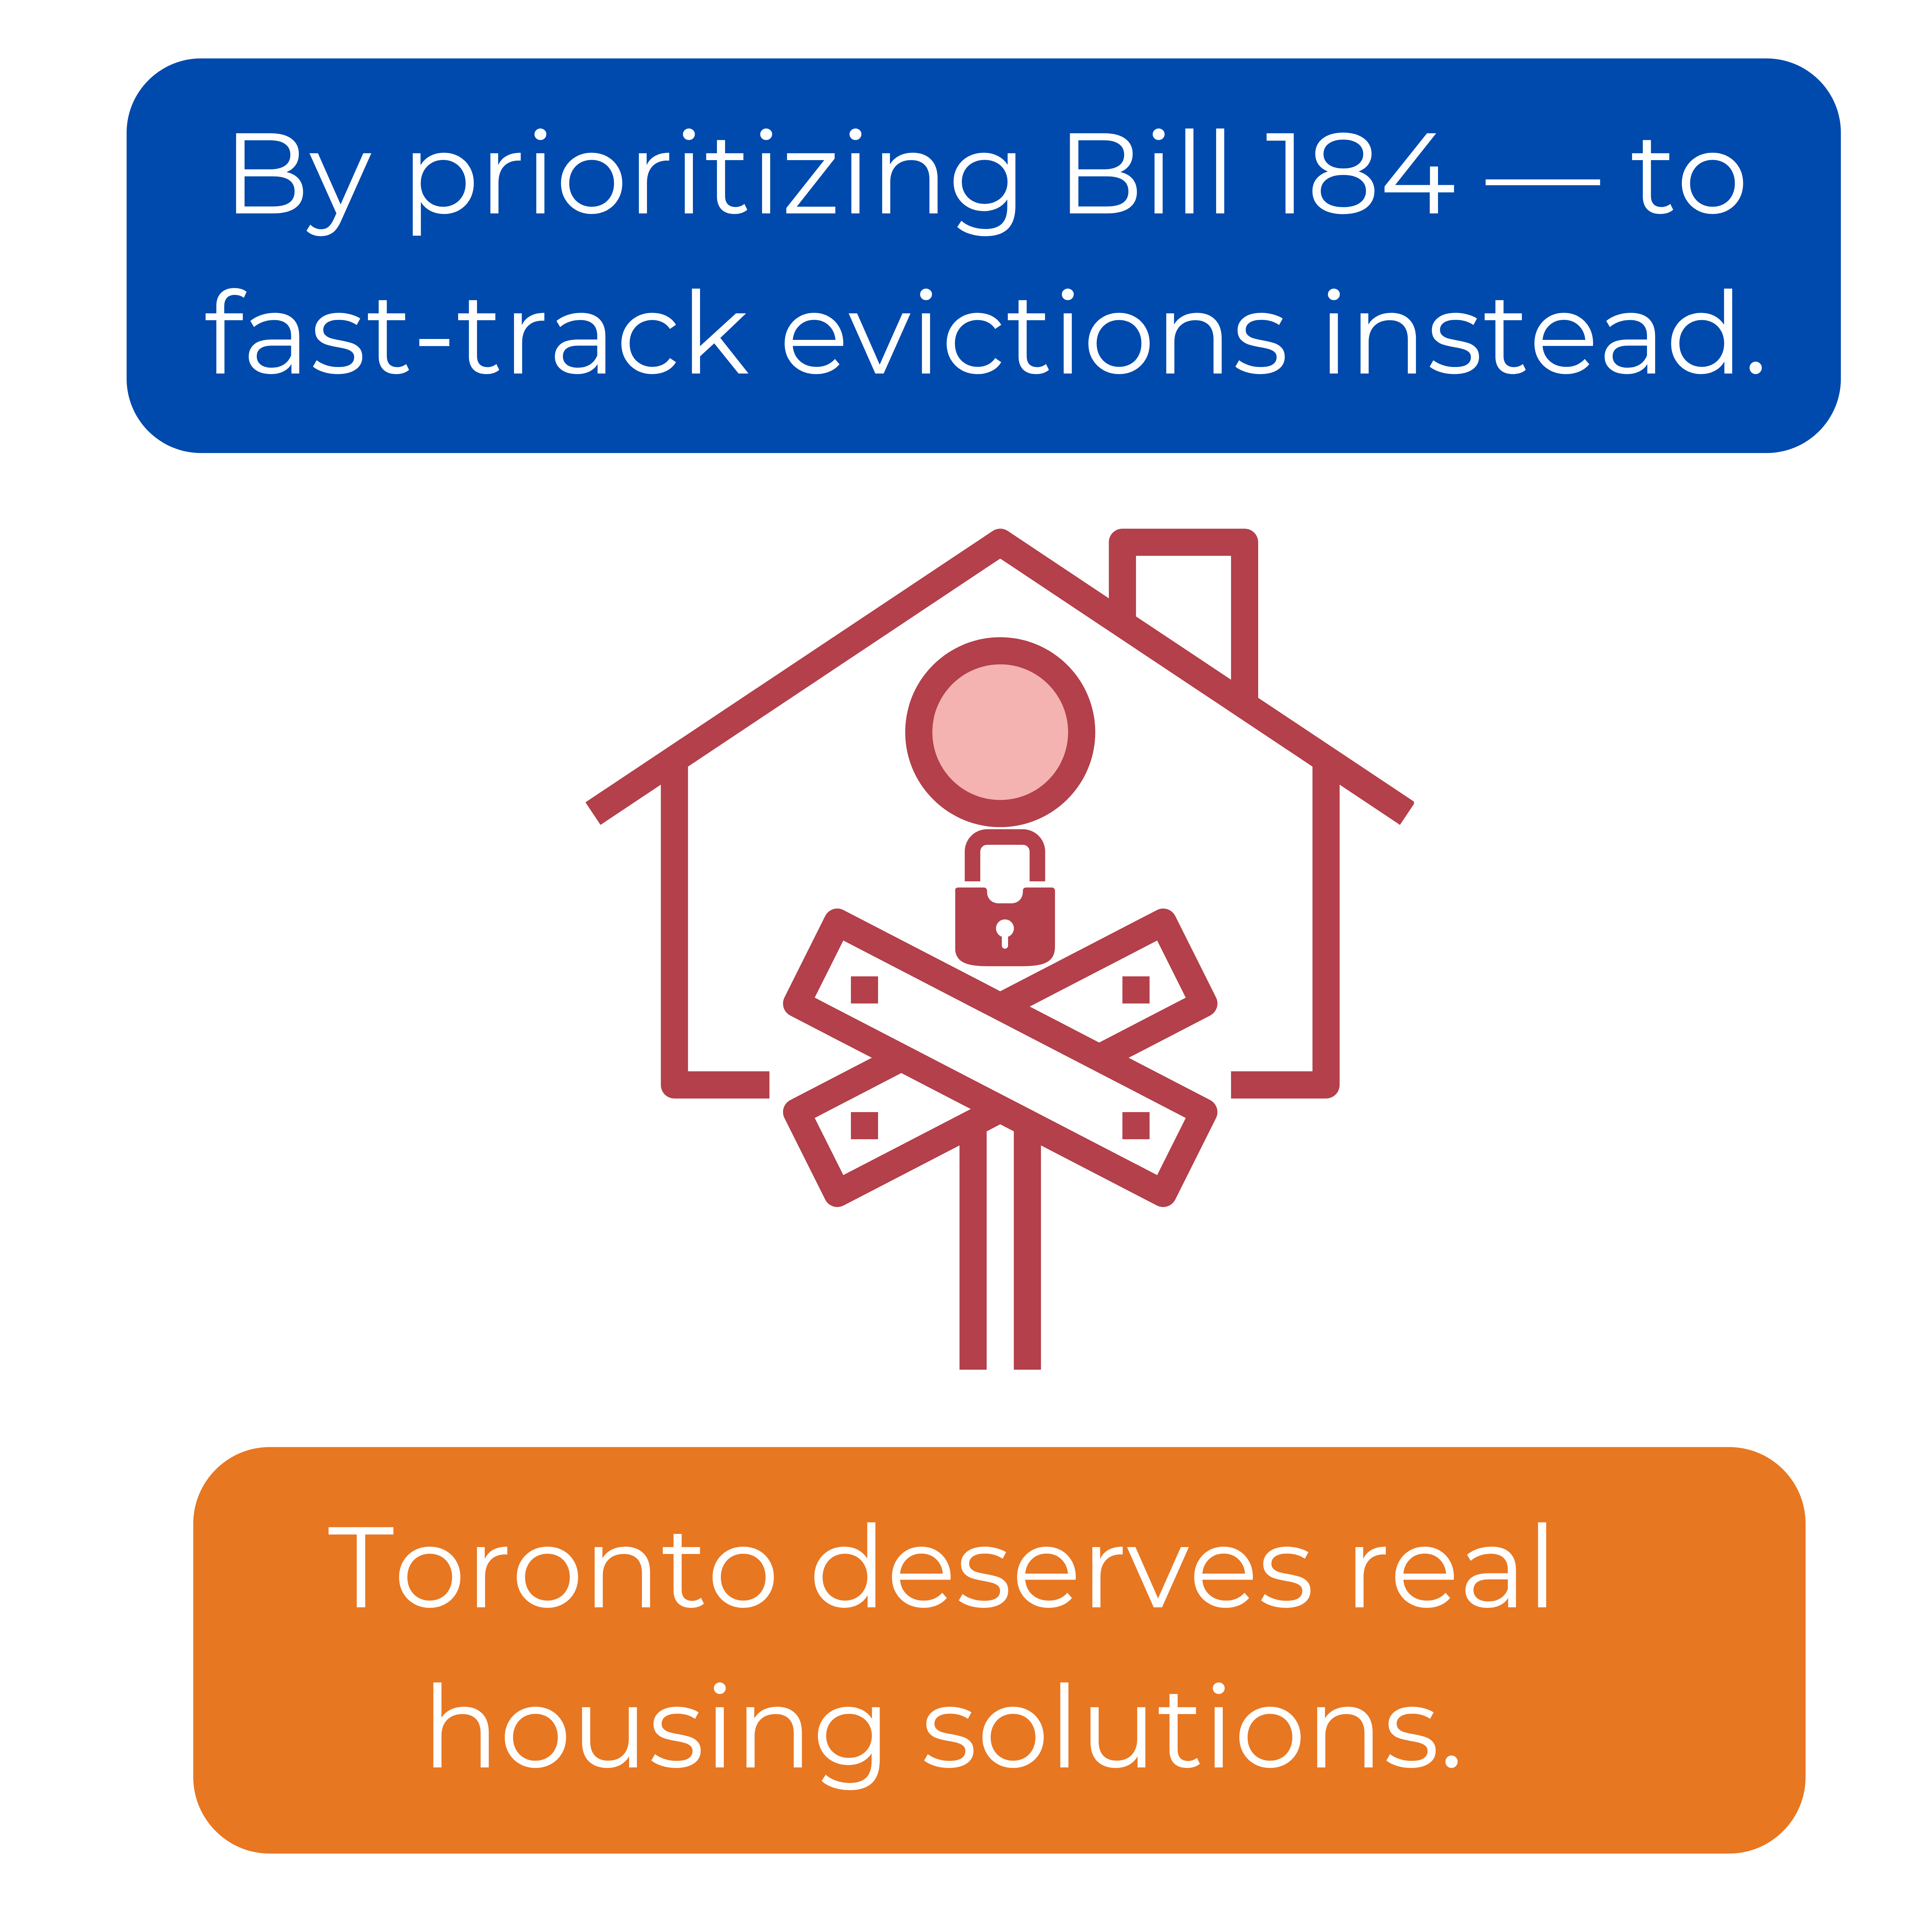 By prioritizing Bill 184 — to fast-track evictions instead. Toronto deserves real housing solutions.